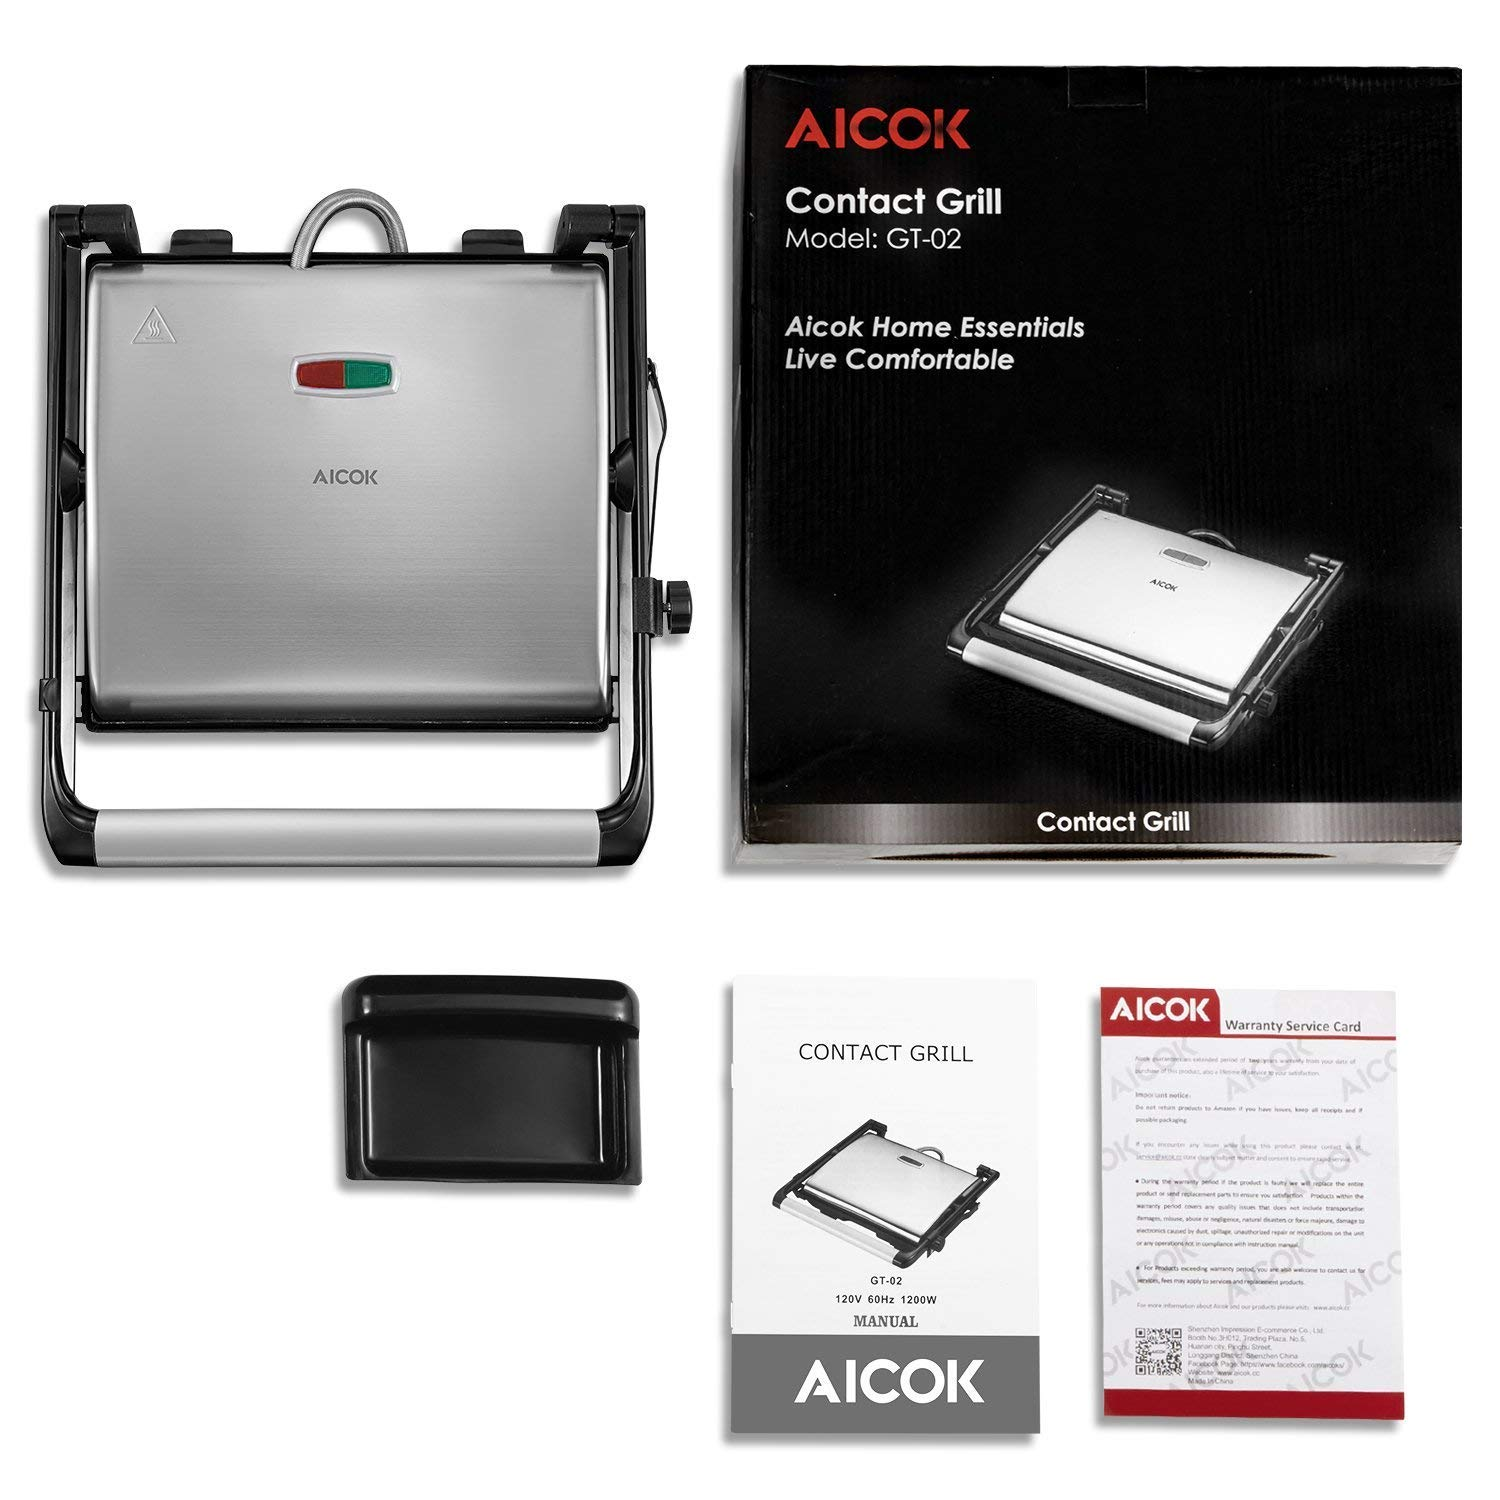 AICOK Sandwich Maker Panini Press Grill Contact Grill 1200-Watts Non-stick with 4-Slice Family Size Rotable Plate, Removable Drip Tray, LED Indicator Lights and Floating Hinge by AICOK